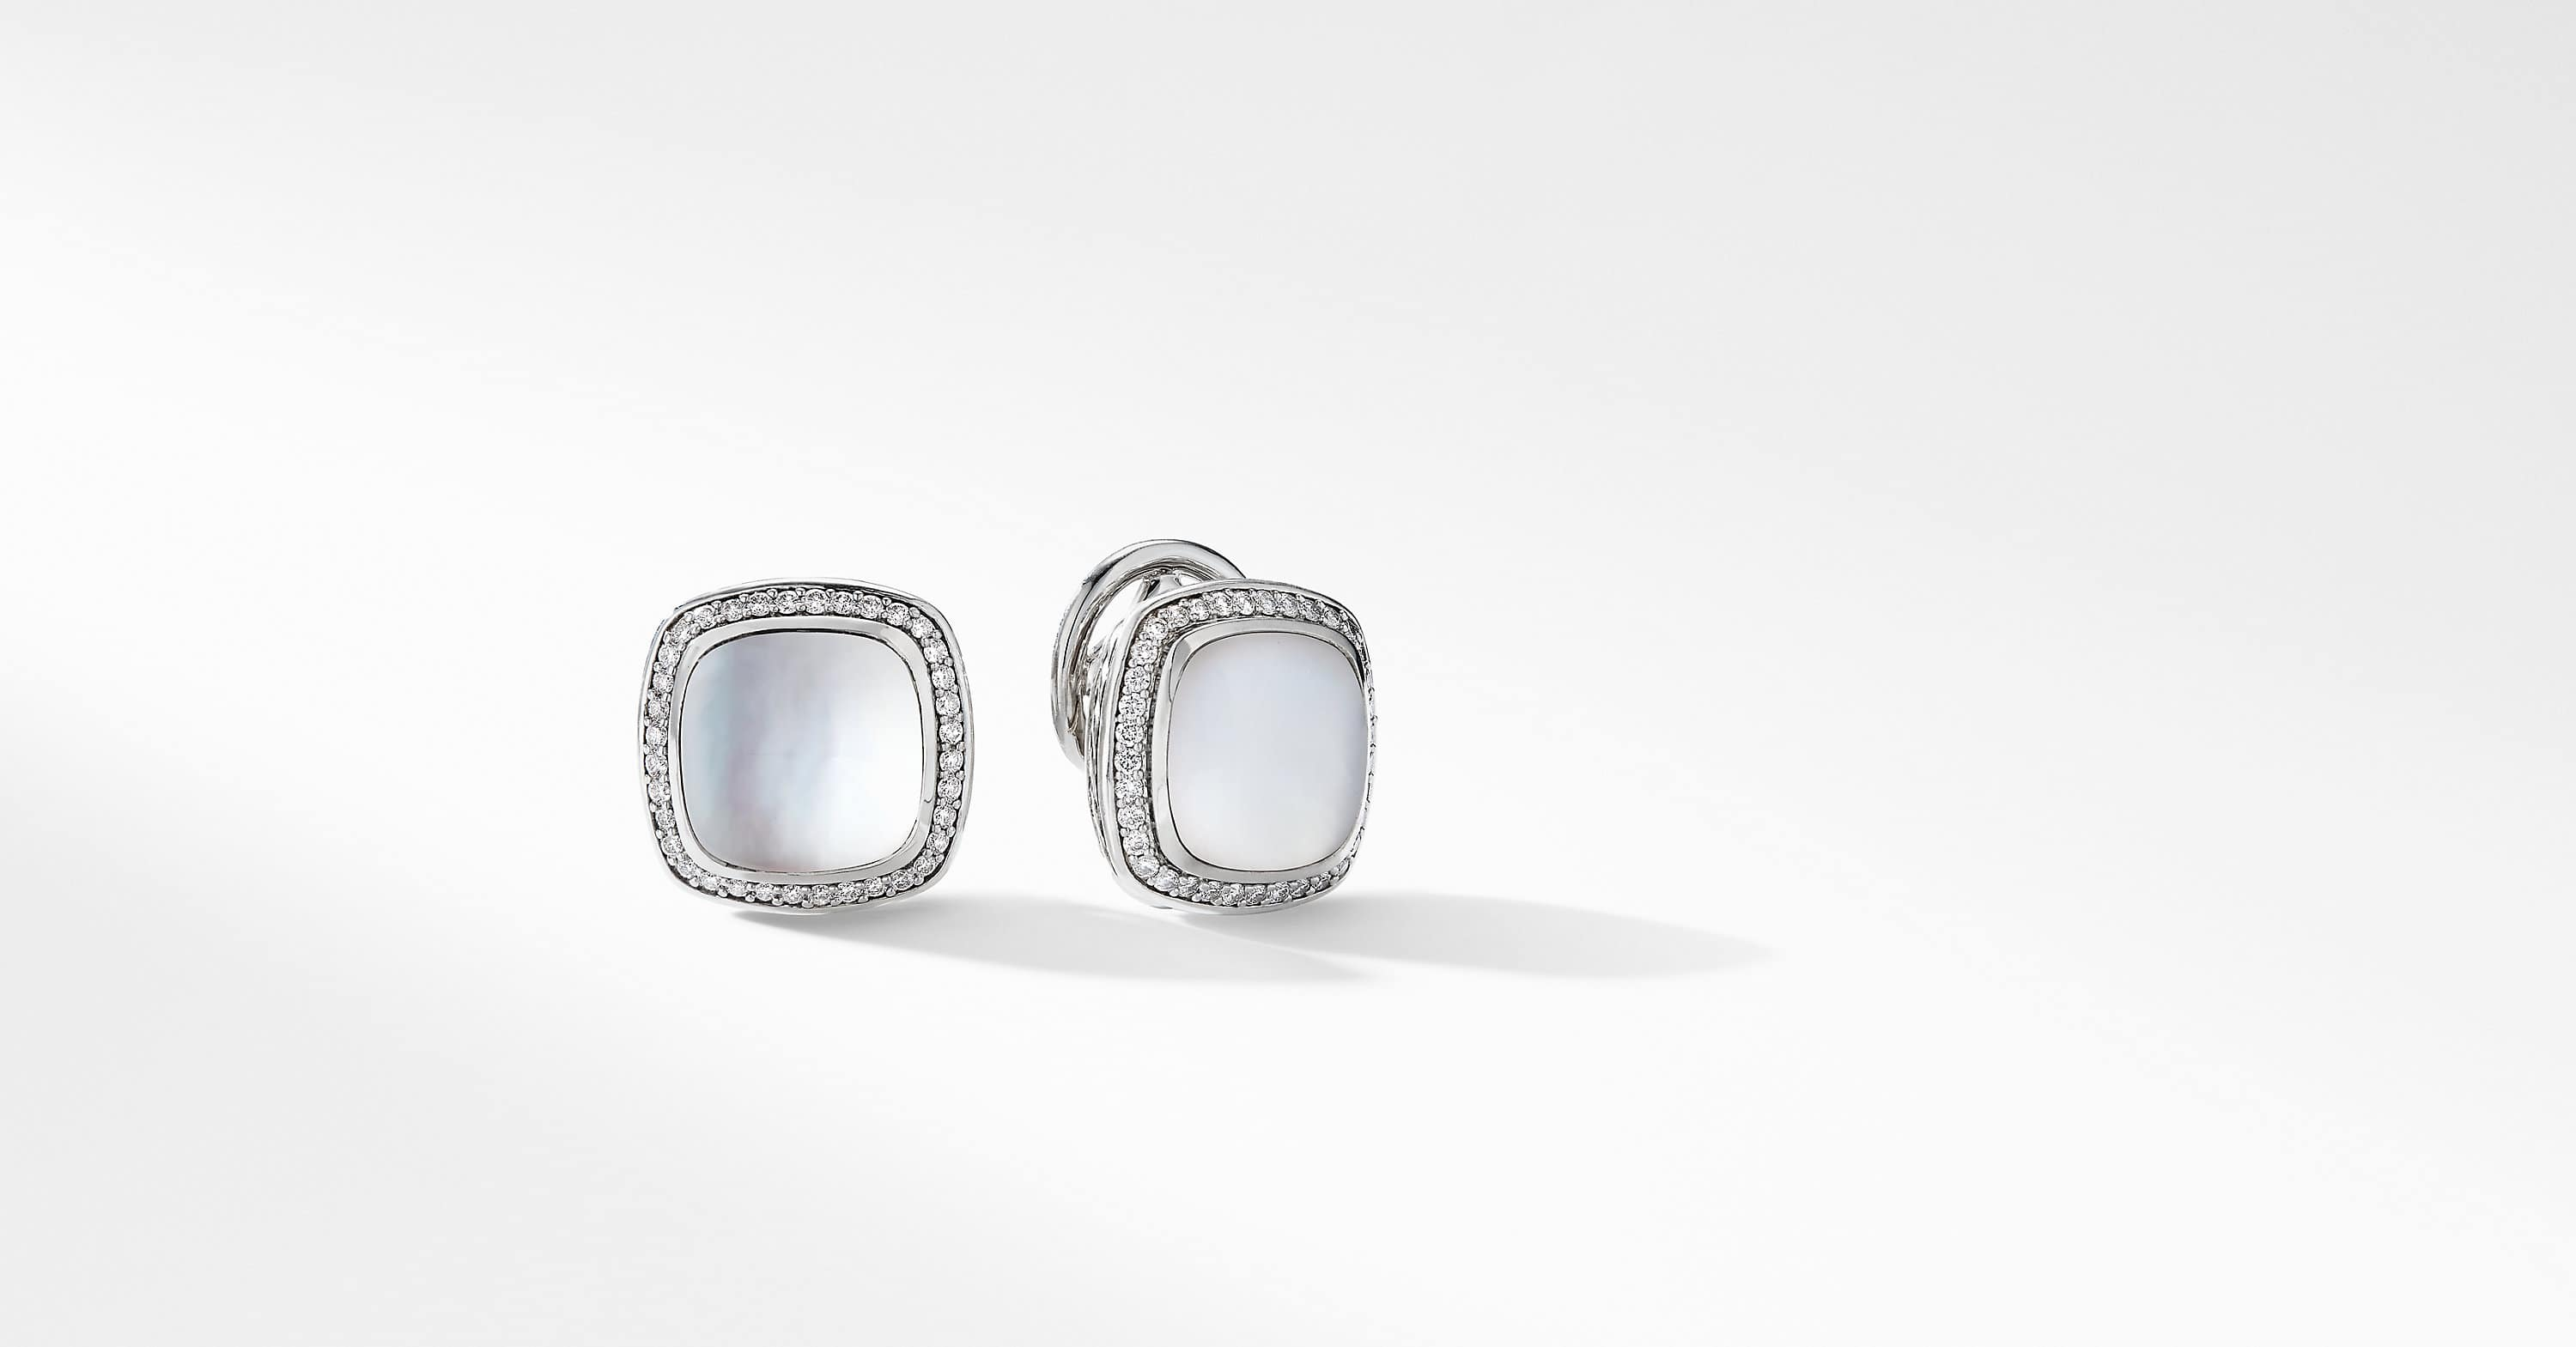 Albion Earrings with Diamonds, 11mm